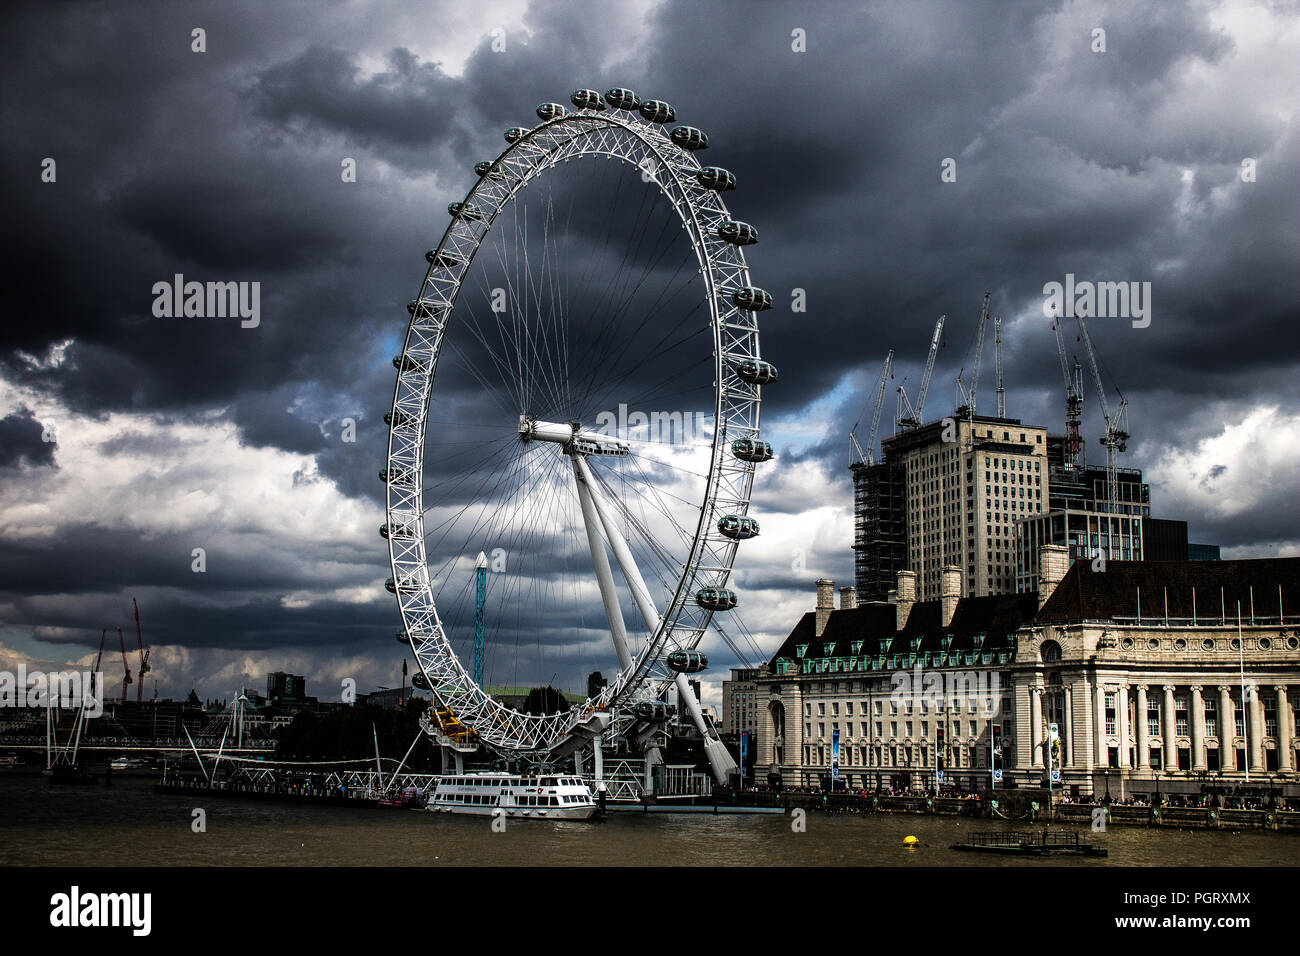 London Eye, London Stock Photo